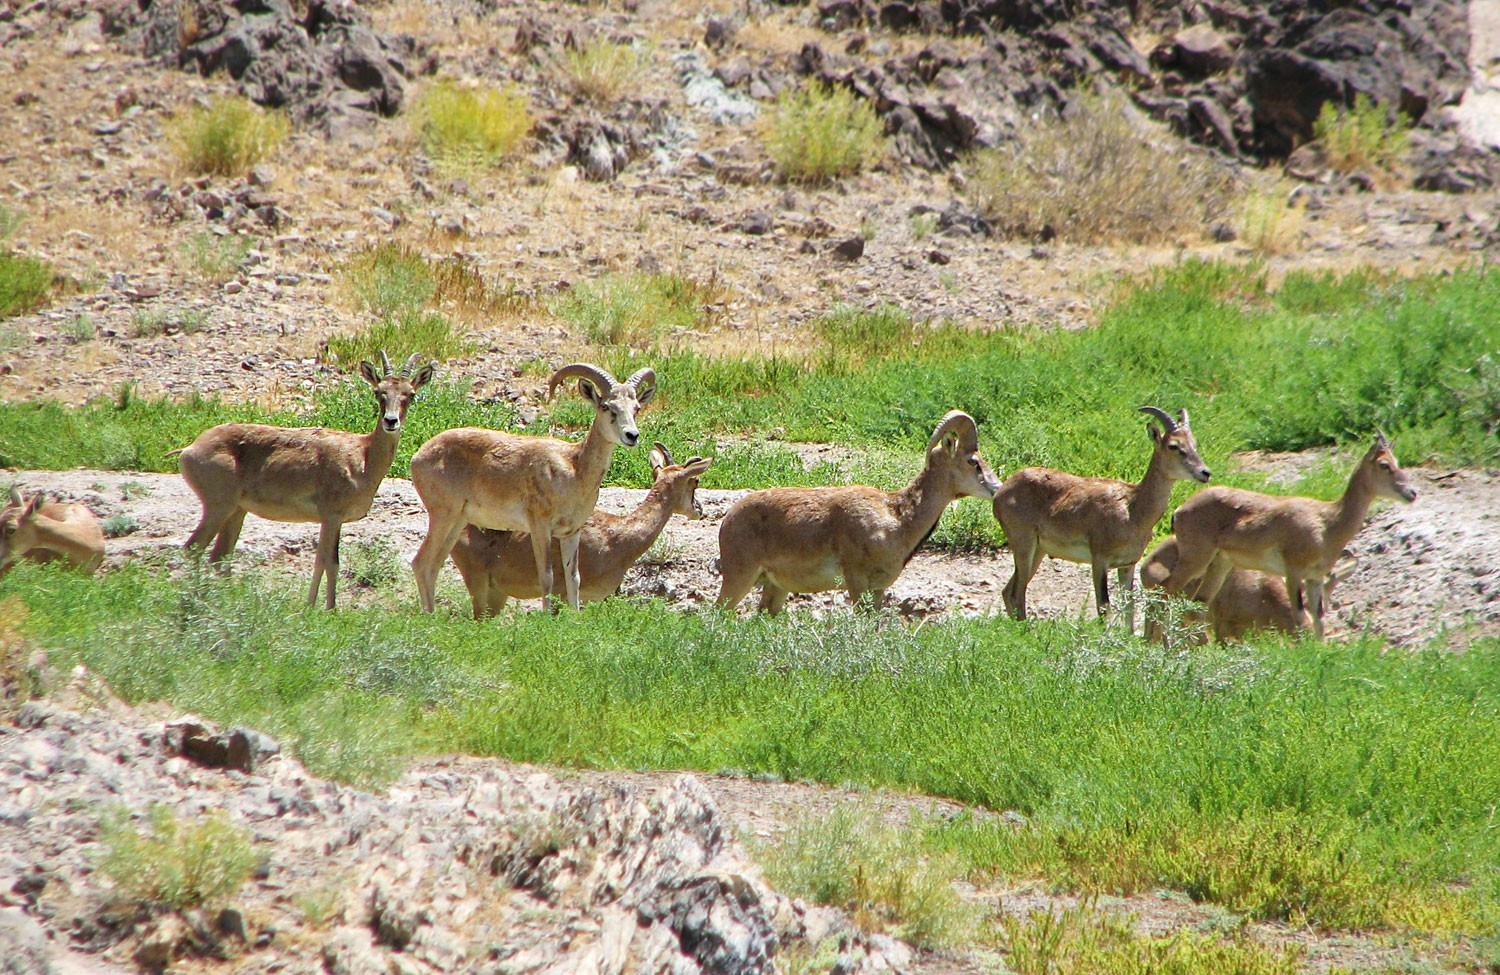 Khar Turan National Park or Touran Wildlife Refuge - Iran